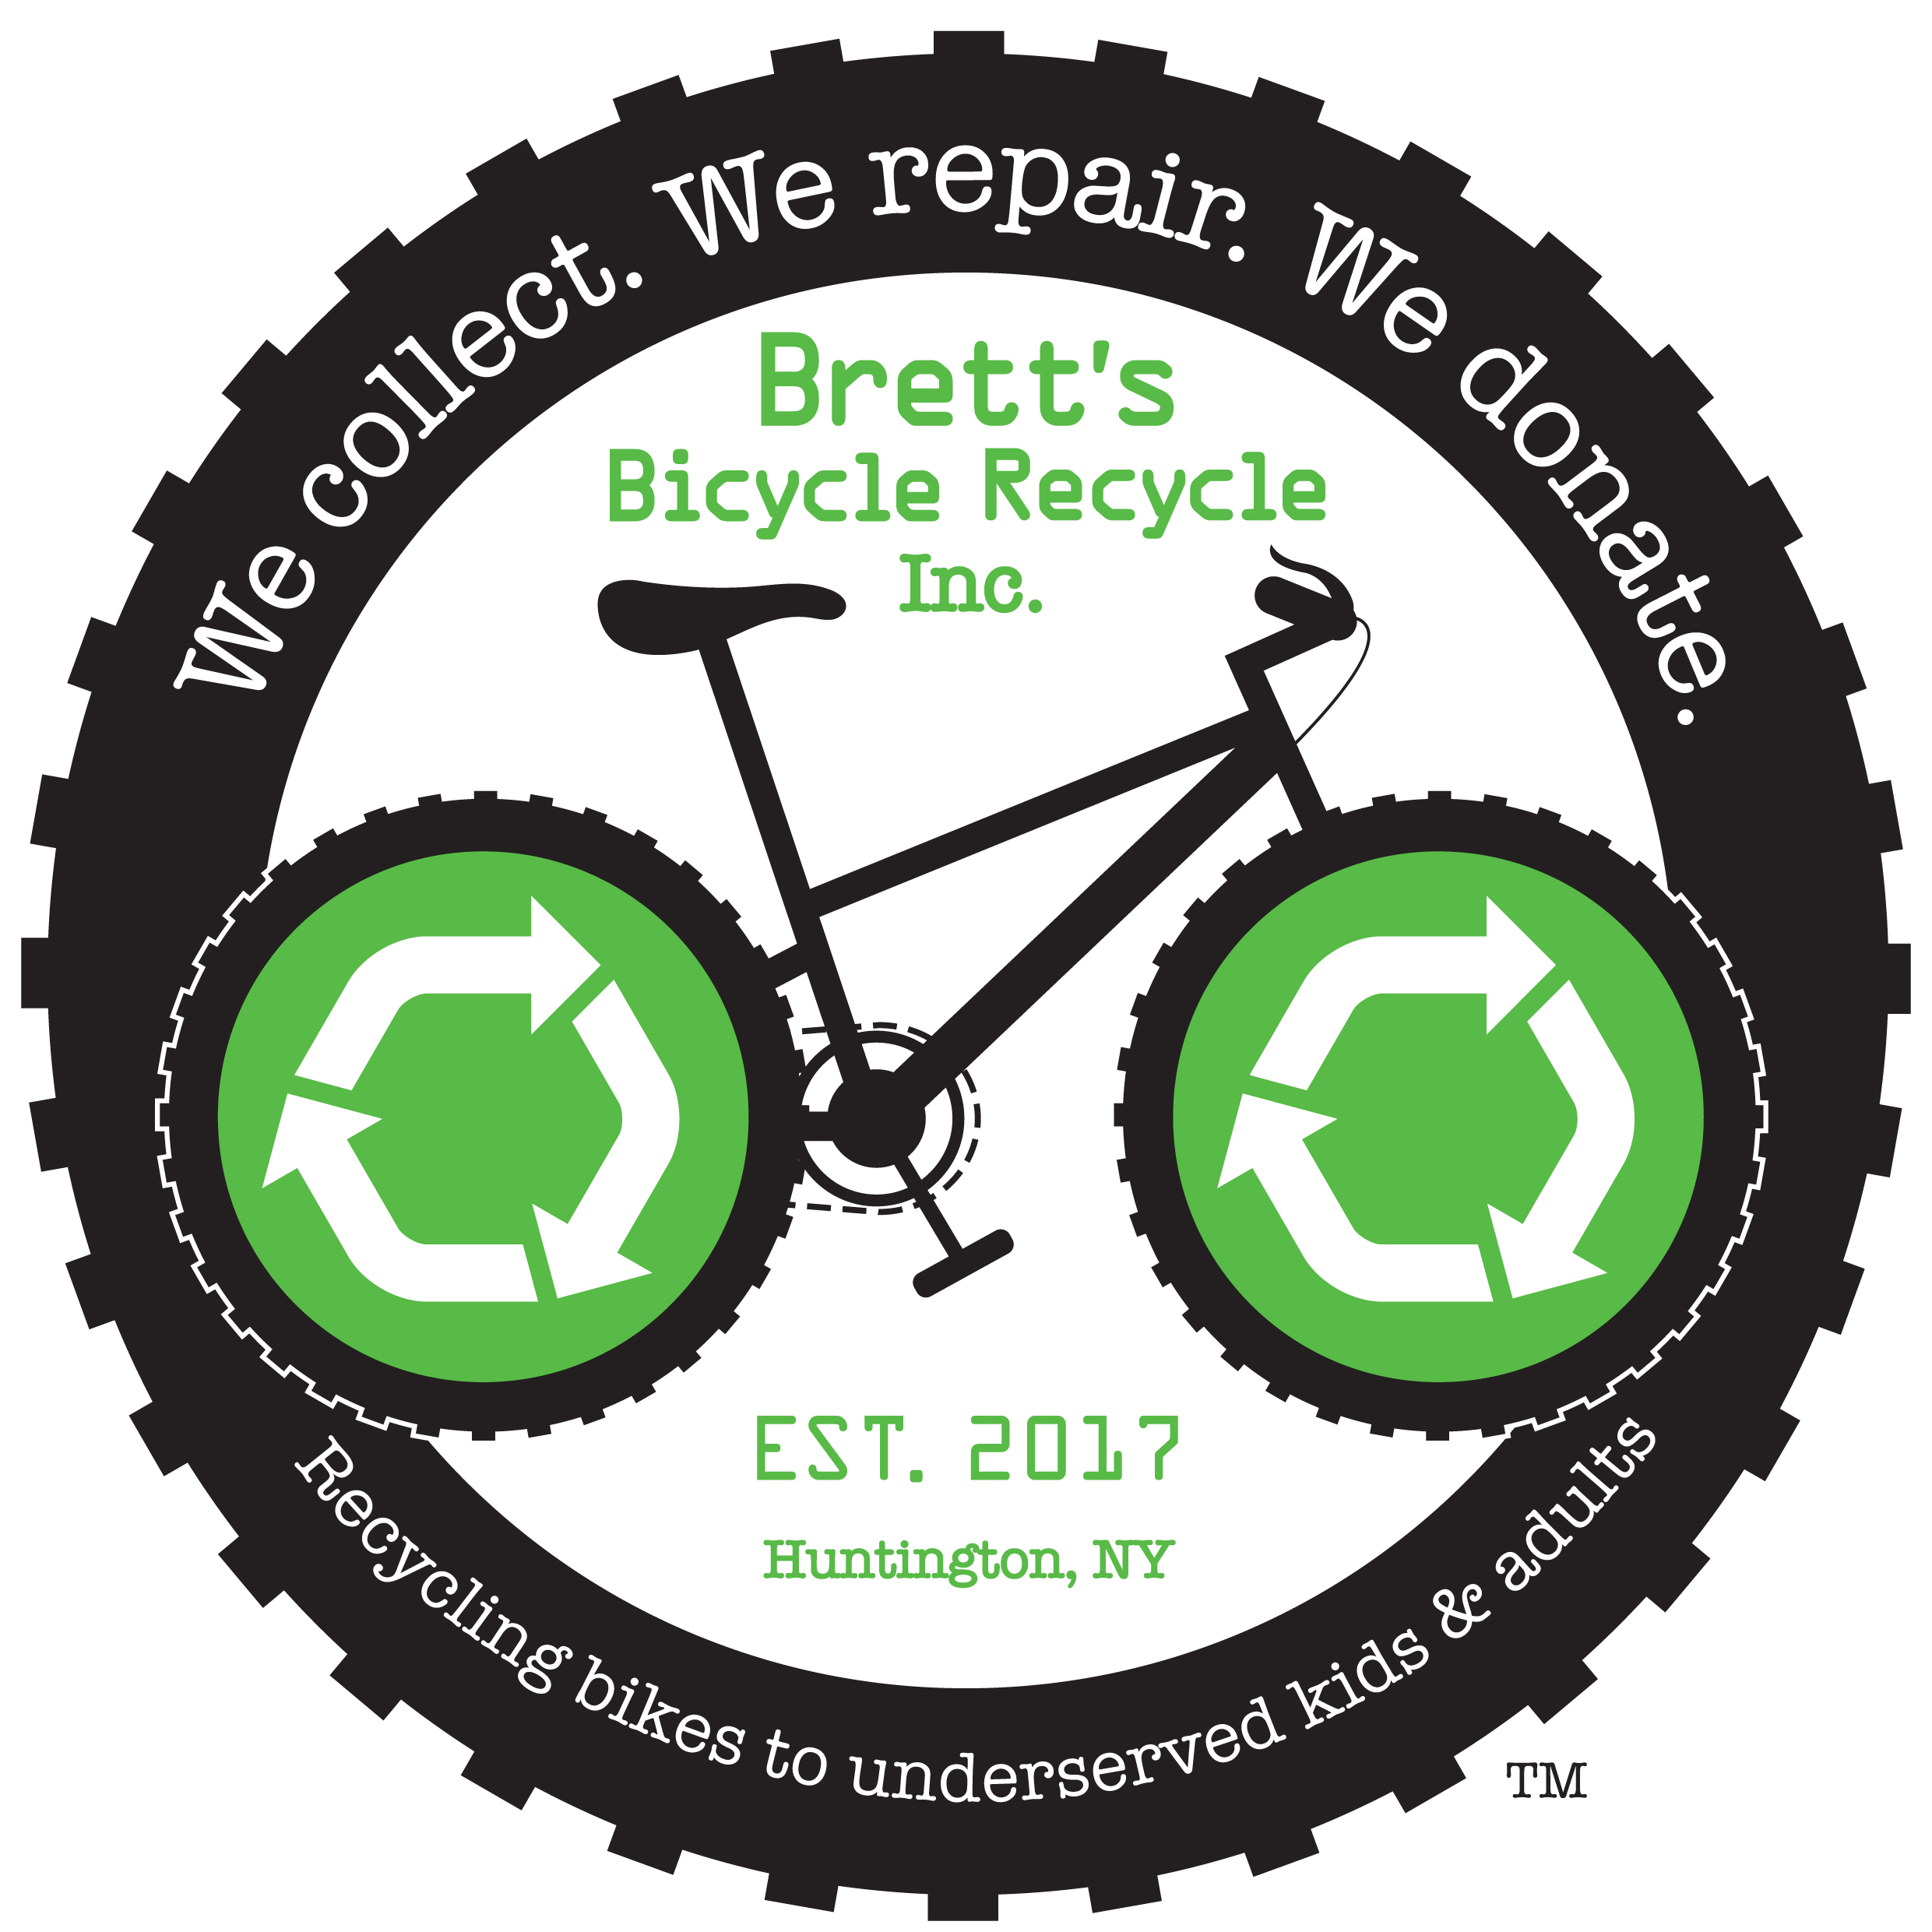 Bretts Bicycle Recycle Inc LOGO 2018 F.jpg